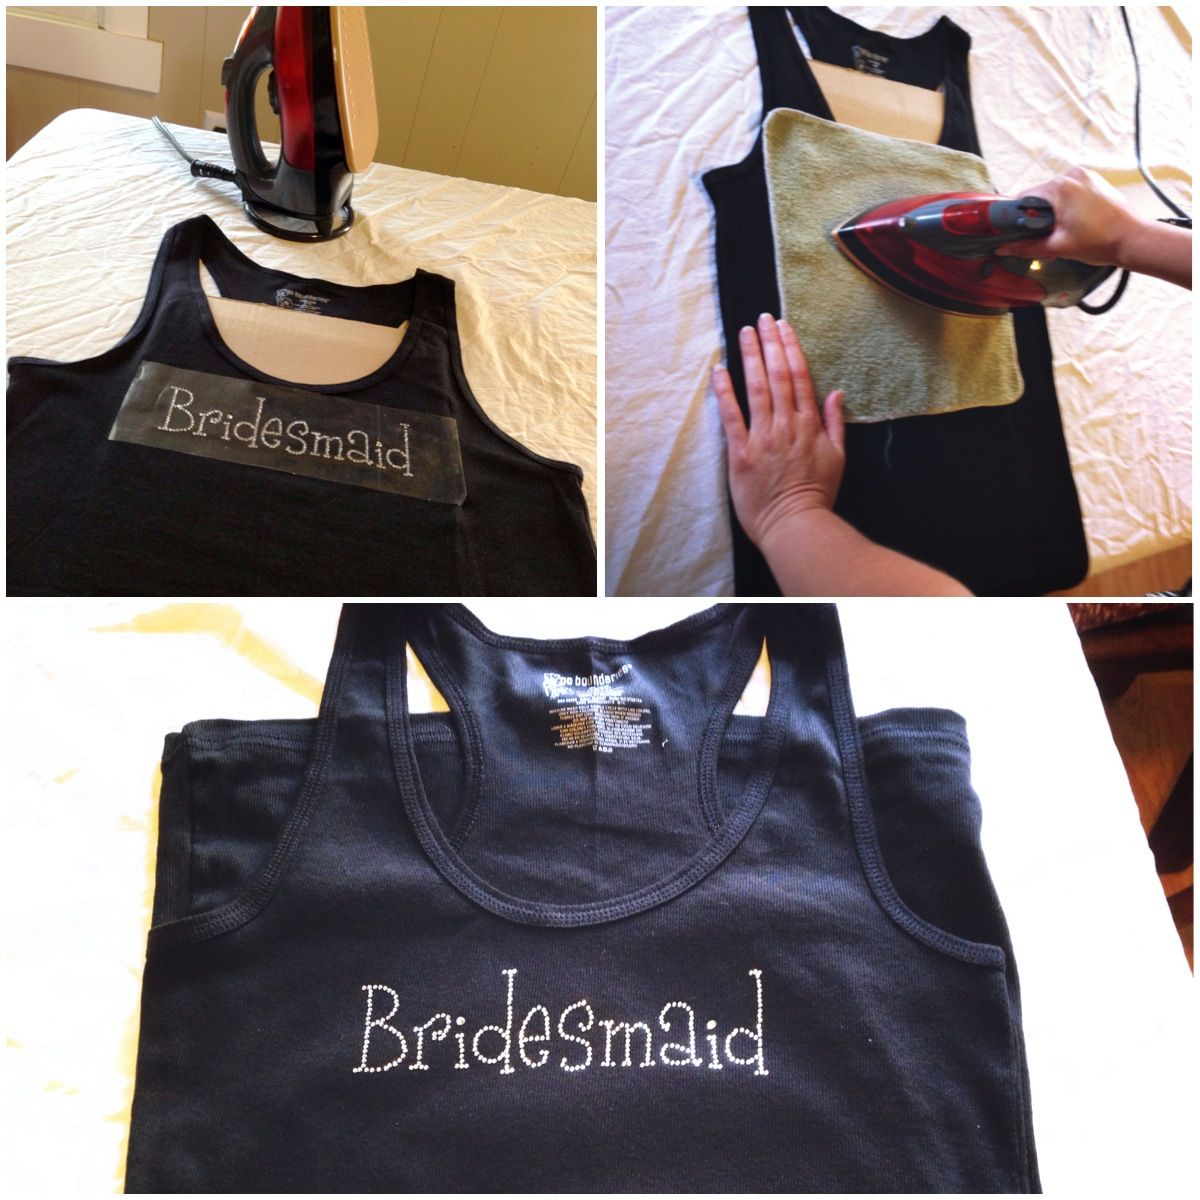 Black t shirt at walmart - Diy Bridesmaid T Shirts For The Girls To Get Ready In The Day Of The